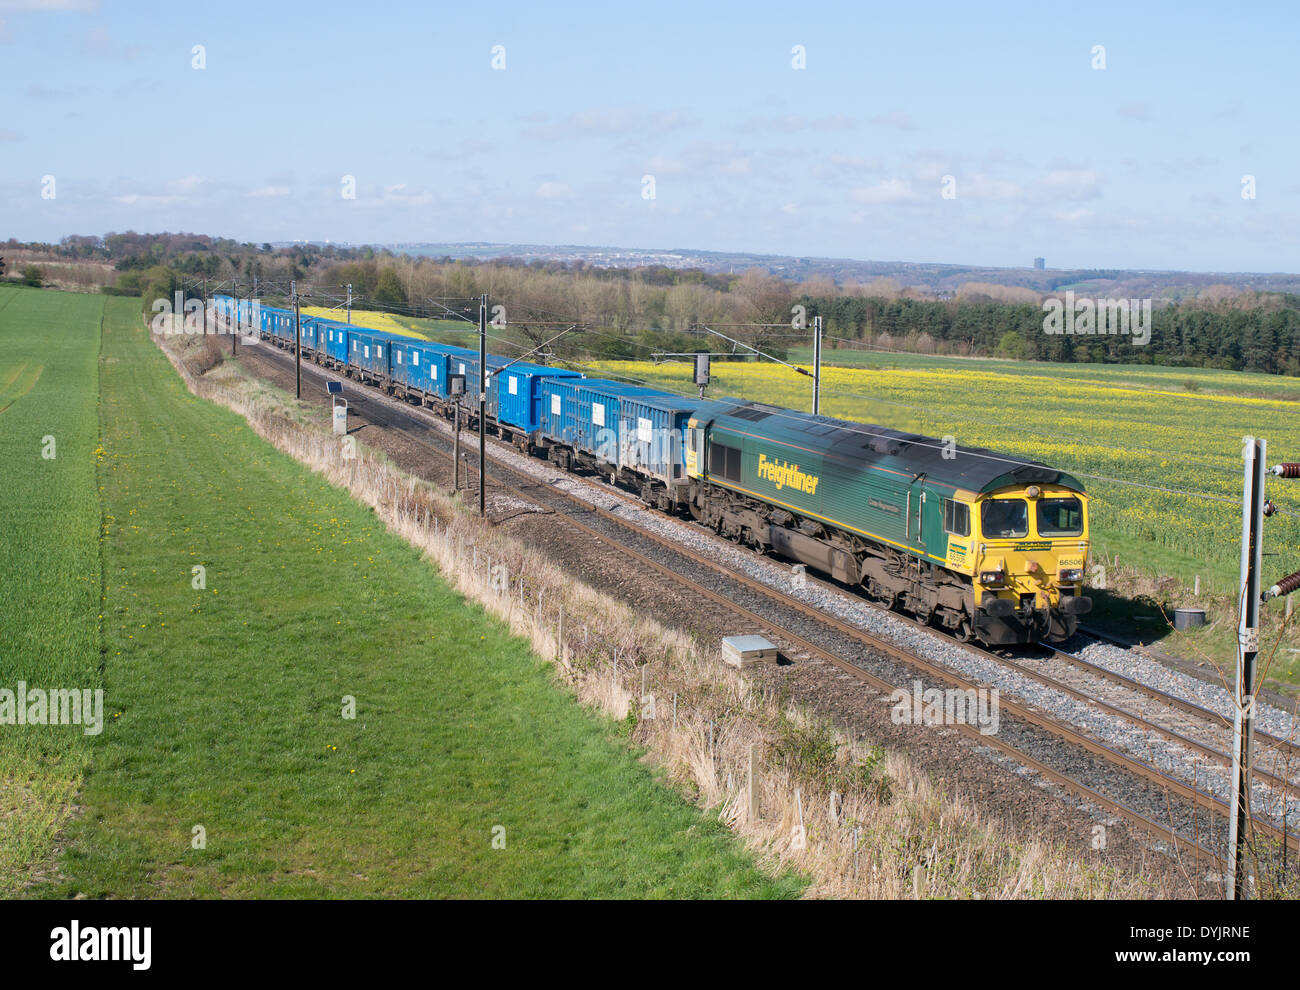 Binliner freight train thought to be used to carry domestic landfill waste from Manchester to Scotland at Plawsworth England UK - Stock Image